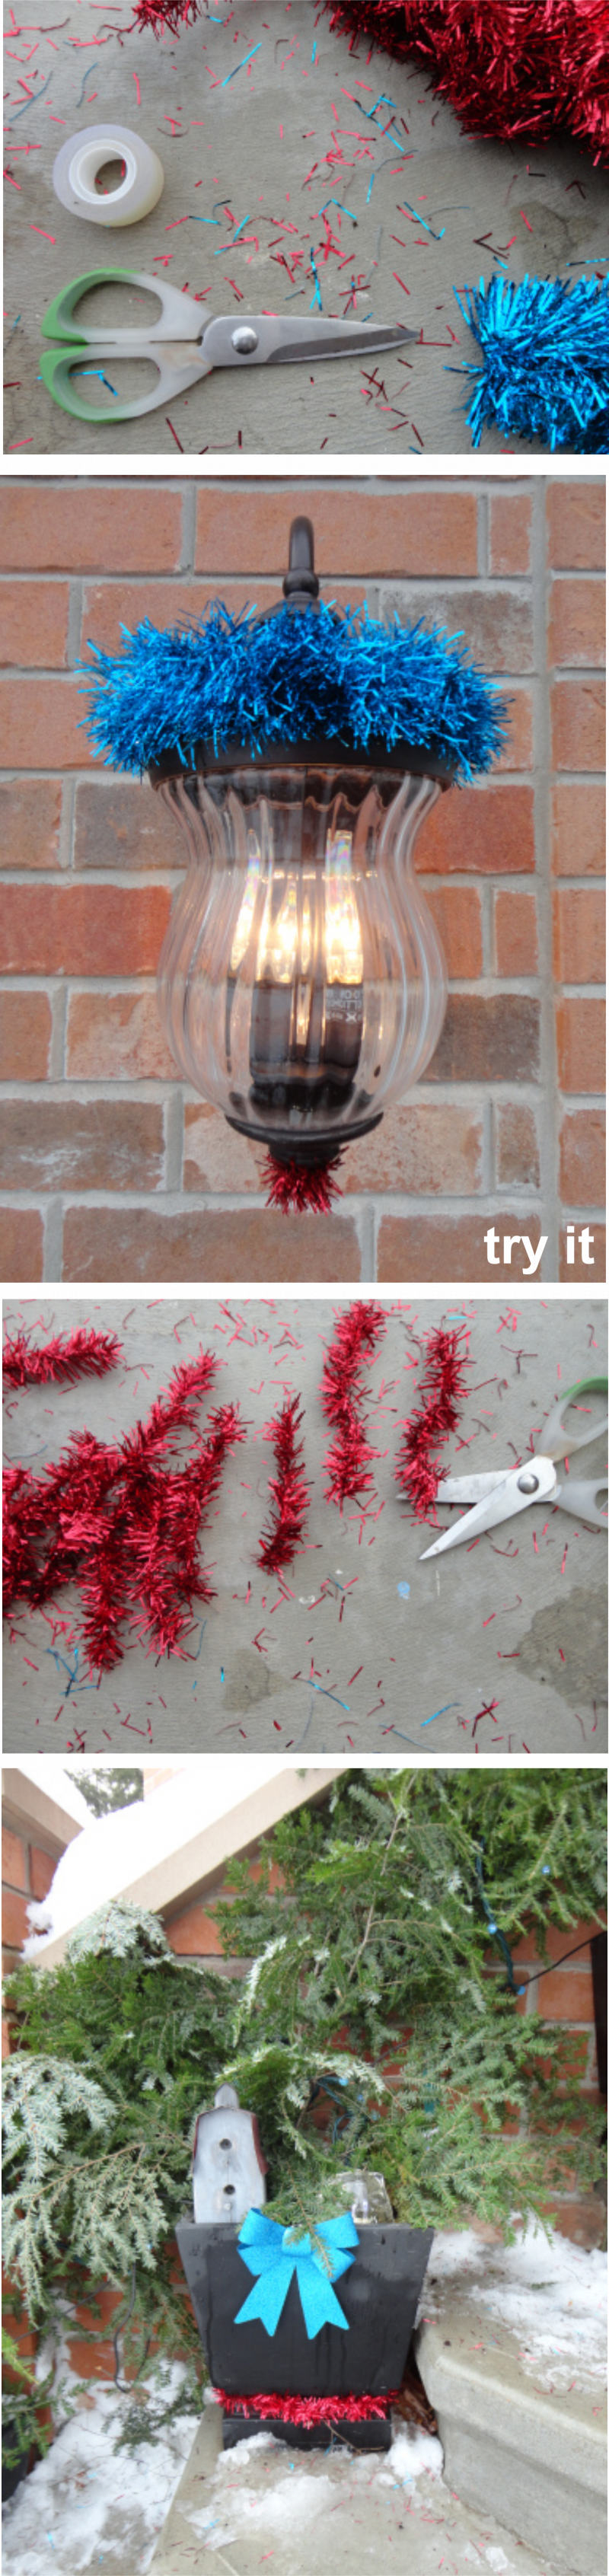 decorate your house for christmas without money